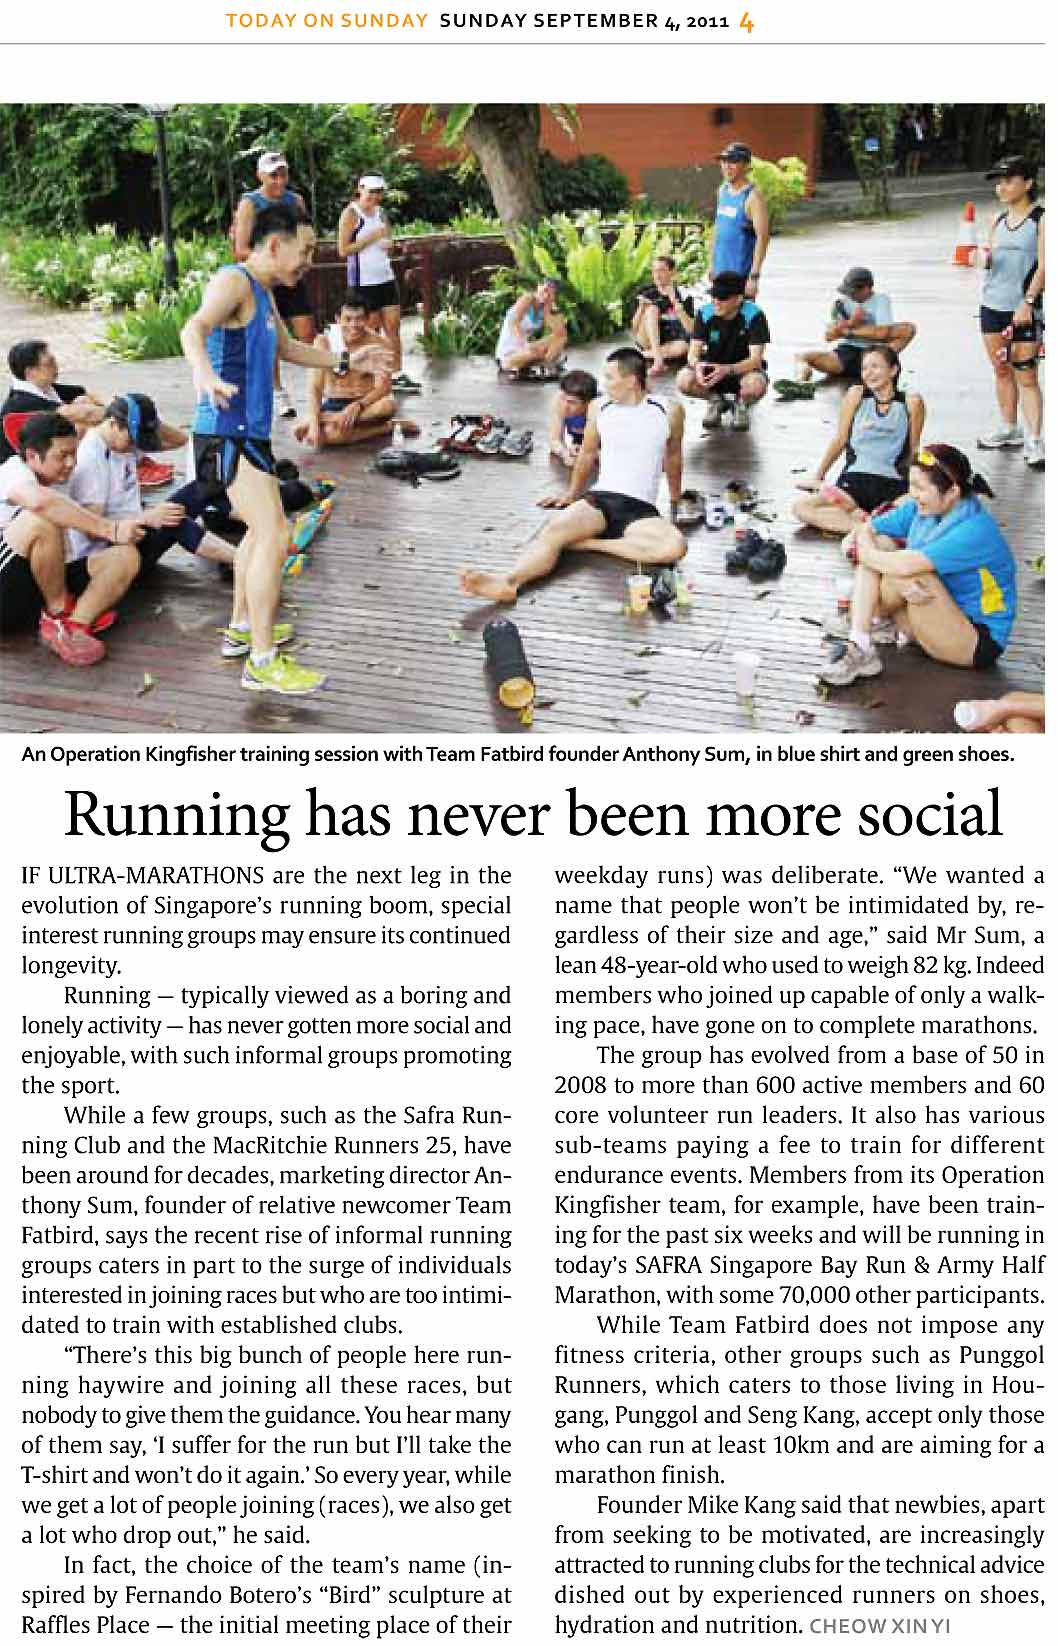 Running has never been more social